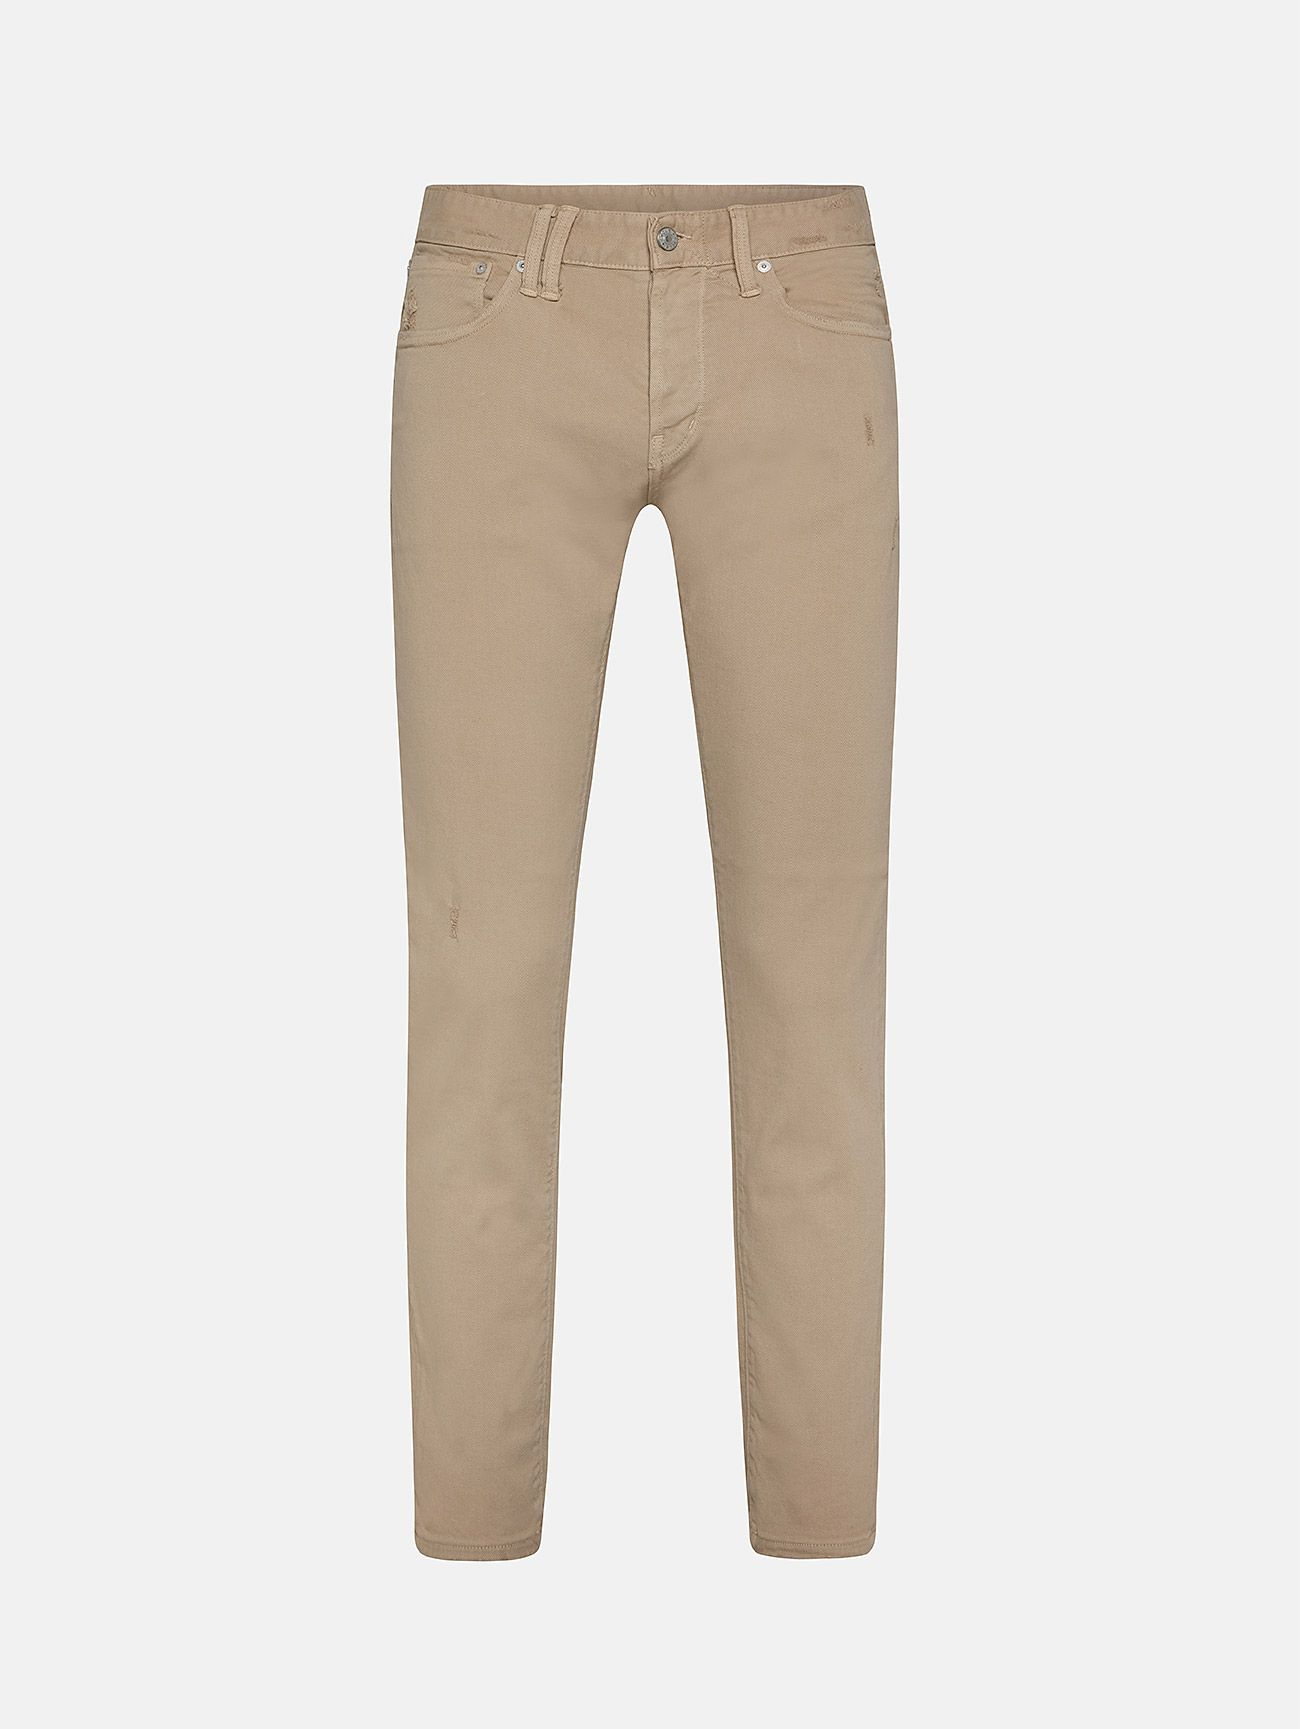 BONE COMFORT SKINNY DISTRESSED AND DYED BEIGE